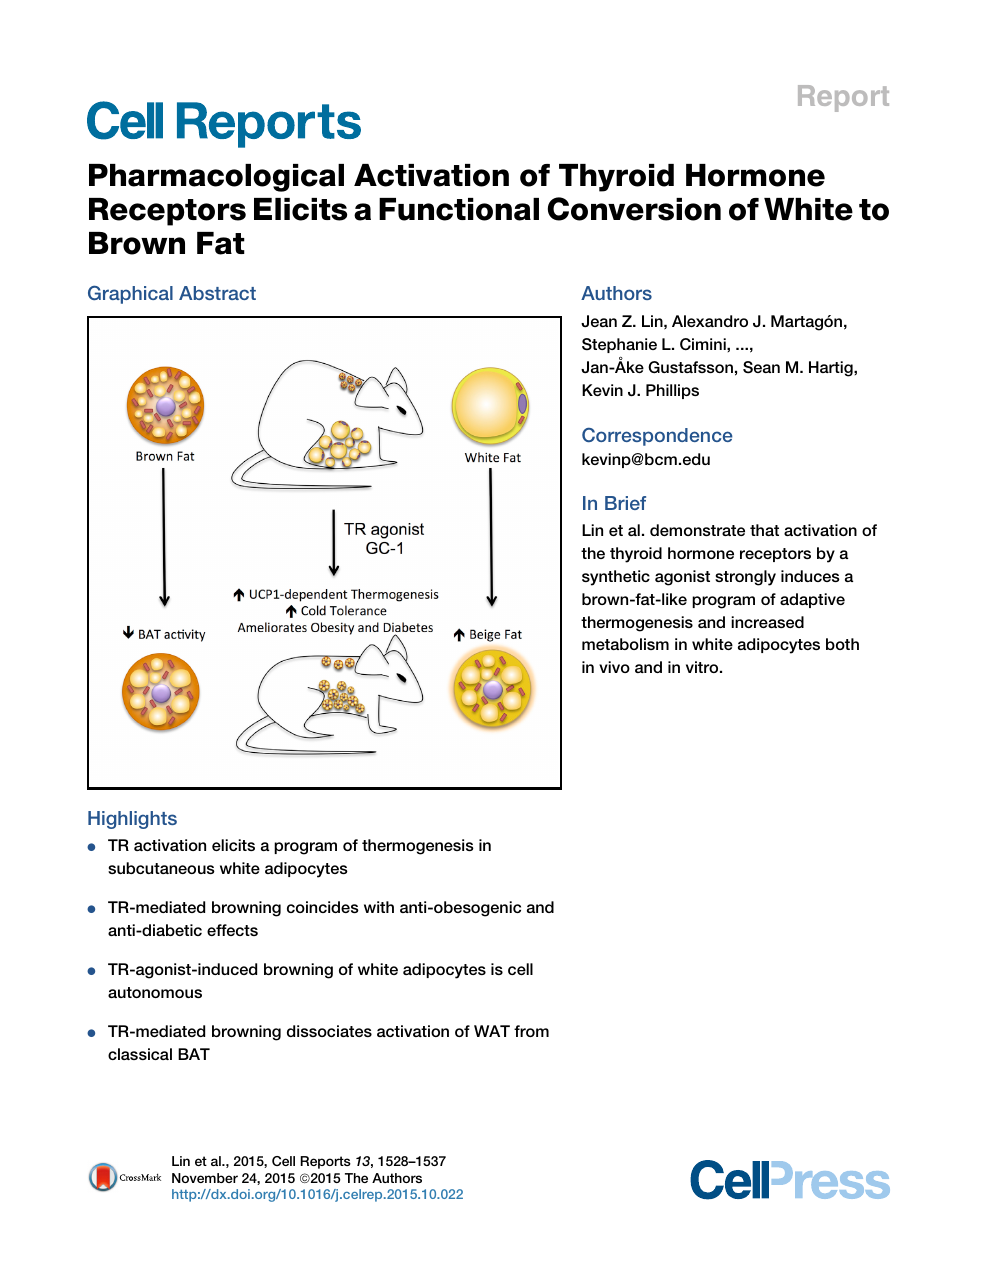 Pharmacological Activation of Thyroid Hormone Receptors